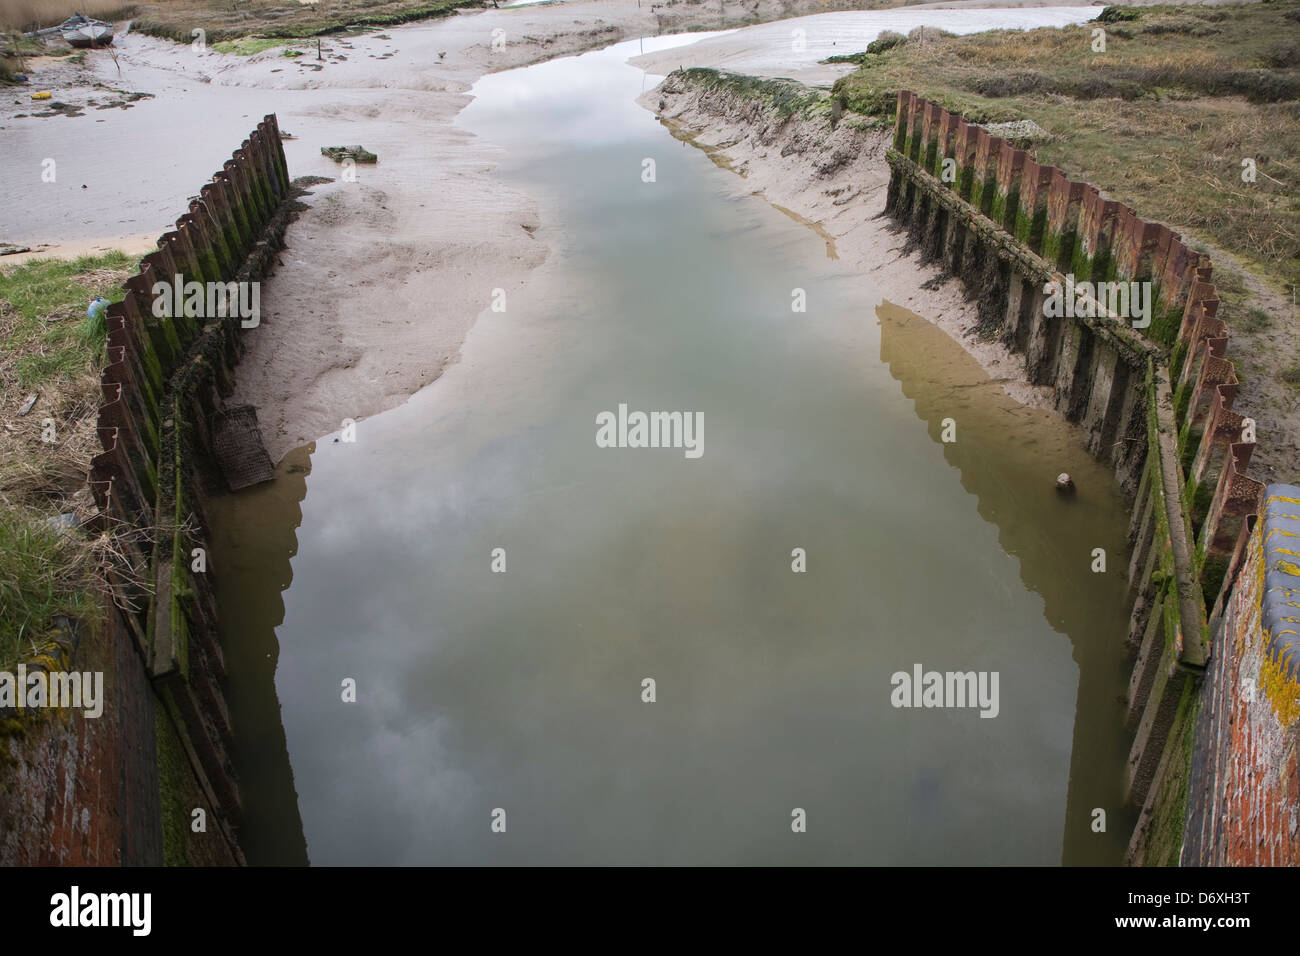 Drainage sluice water outflow low tide River Deben, Shottisham Creek, Suffolk, - Stock Image